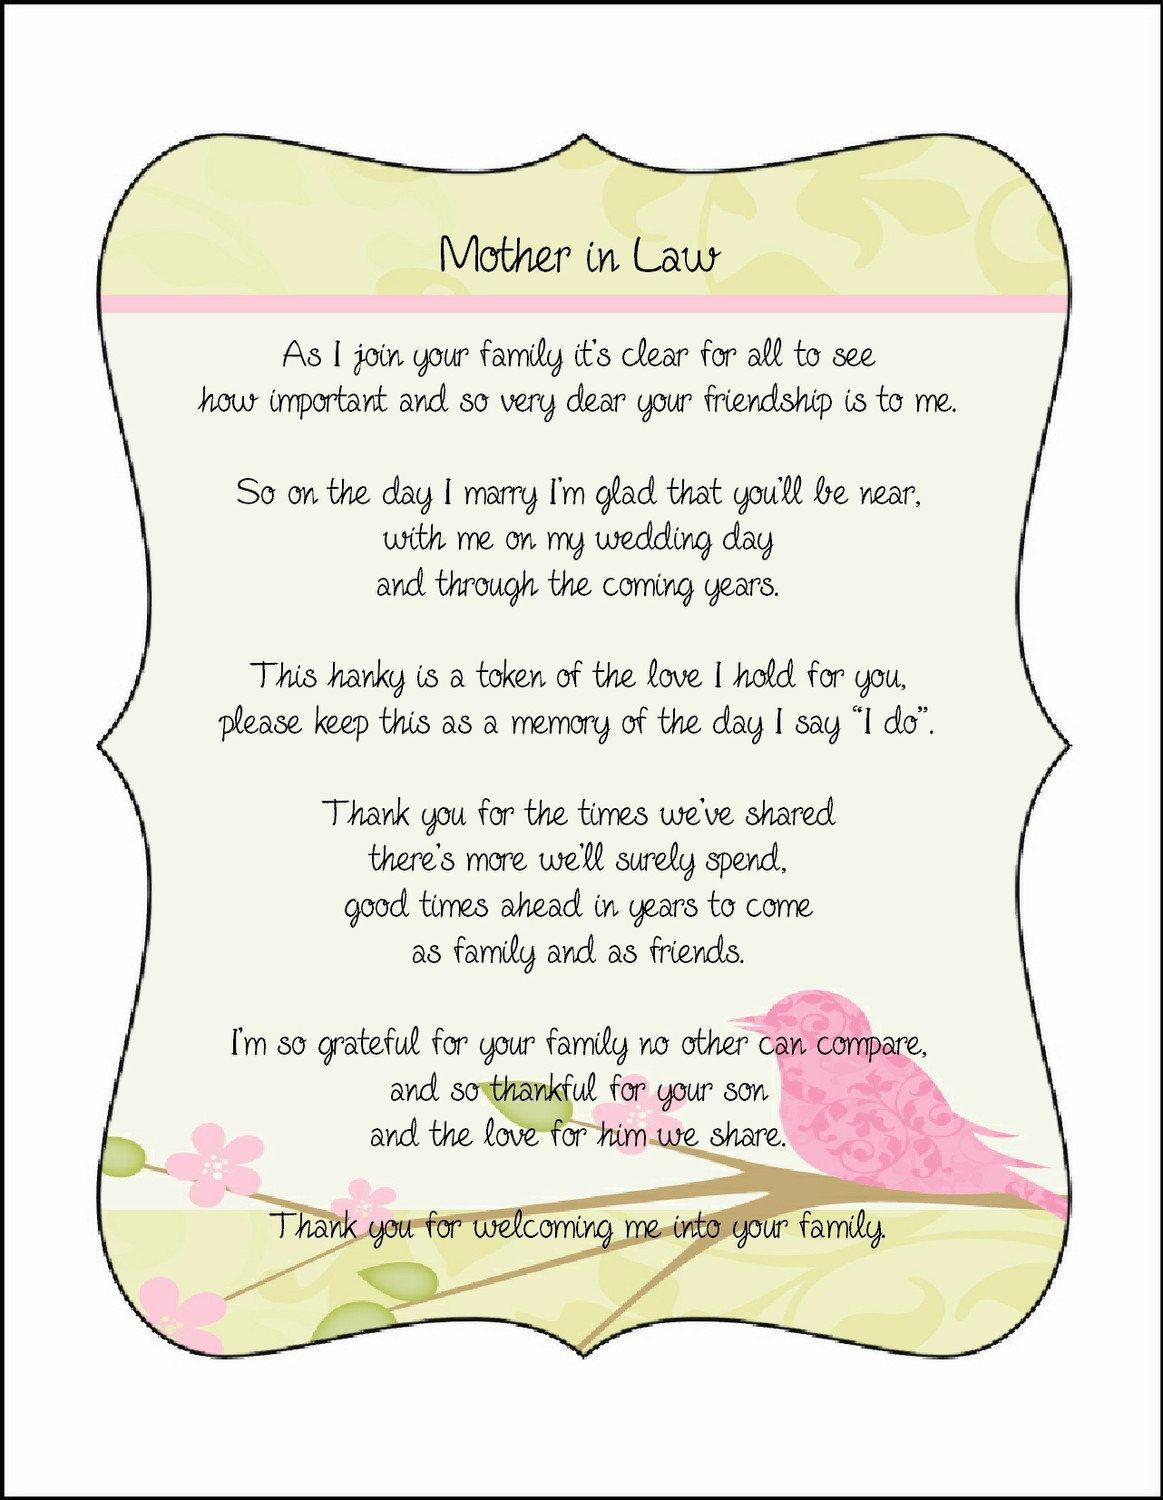 Mother in Law Poem Card from Bride great with embroidered